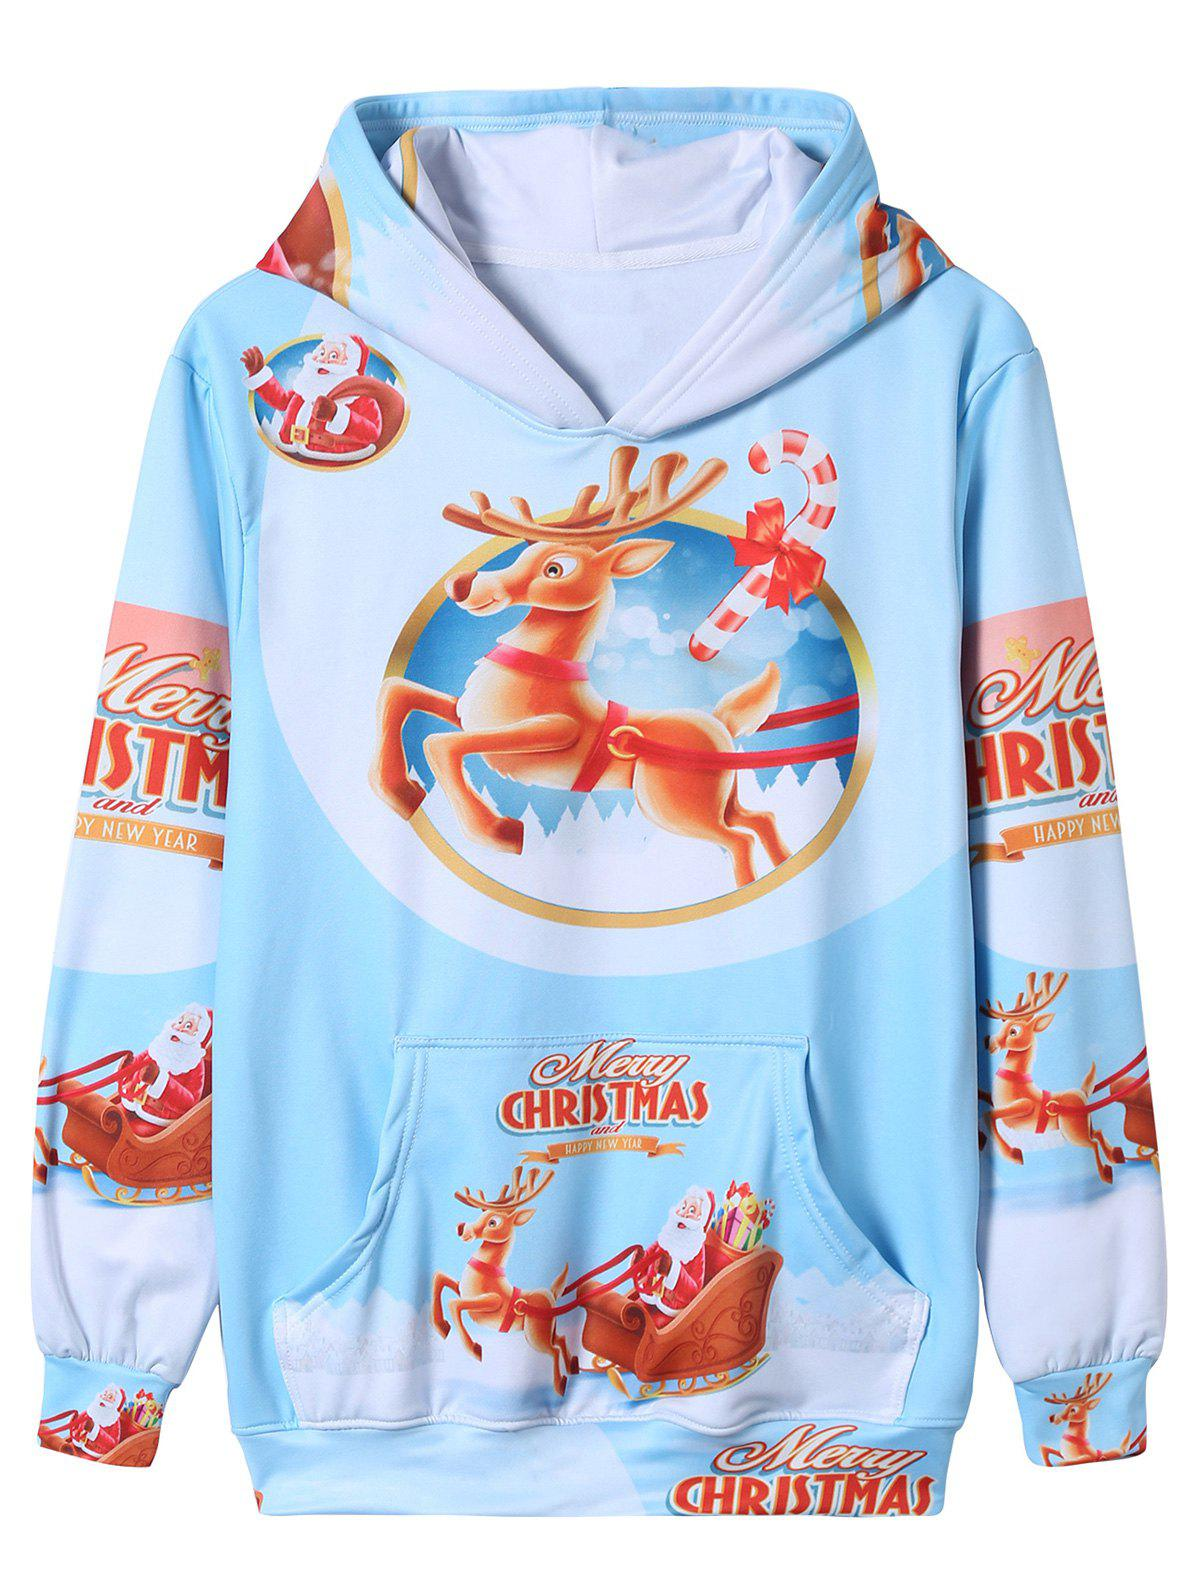 Sweat-shirt à capuche avec impression 3D de Santa Christmas Cartoon Multicolore XL